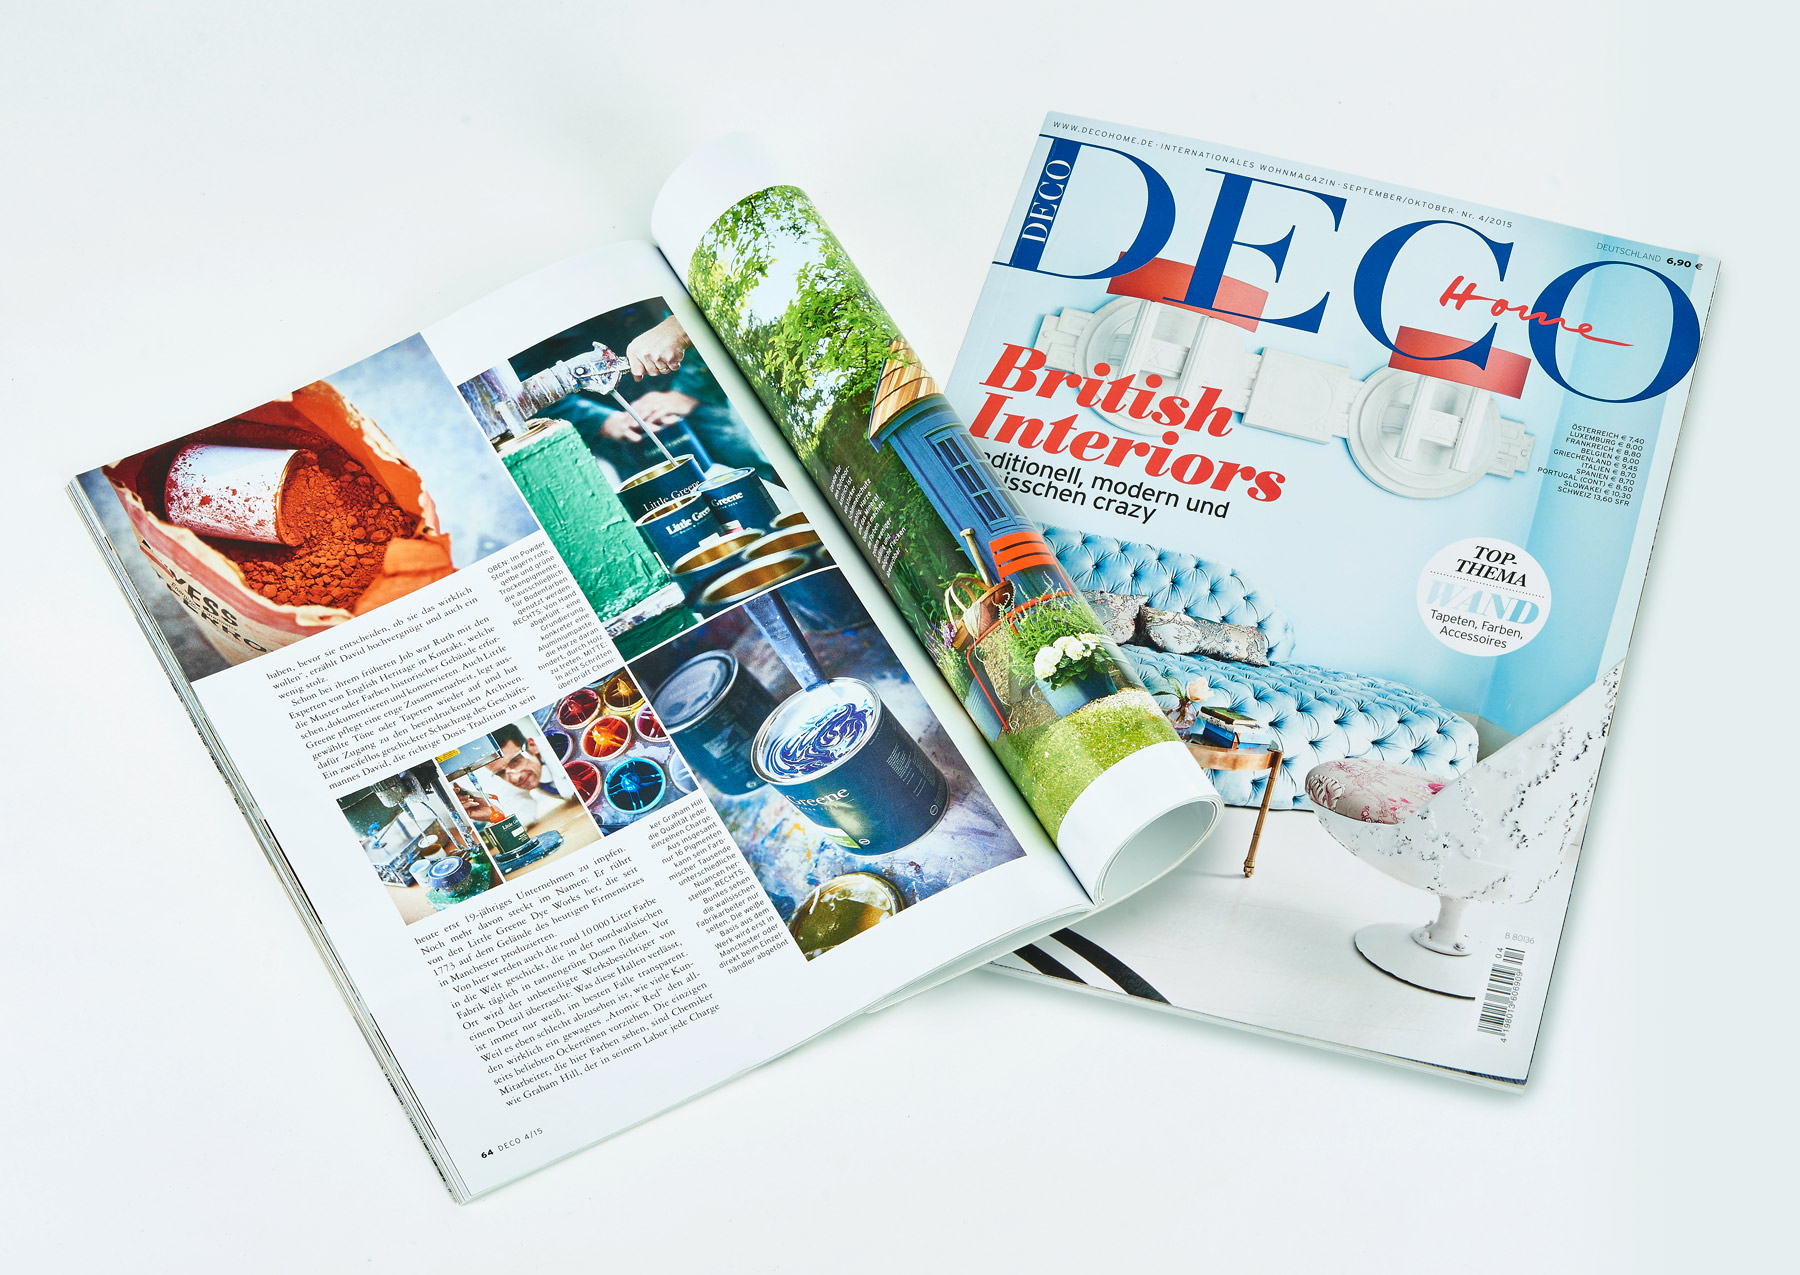 Deco Home article